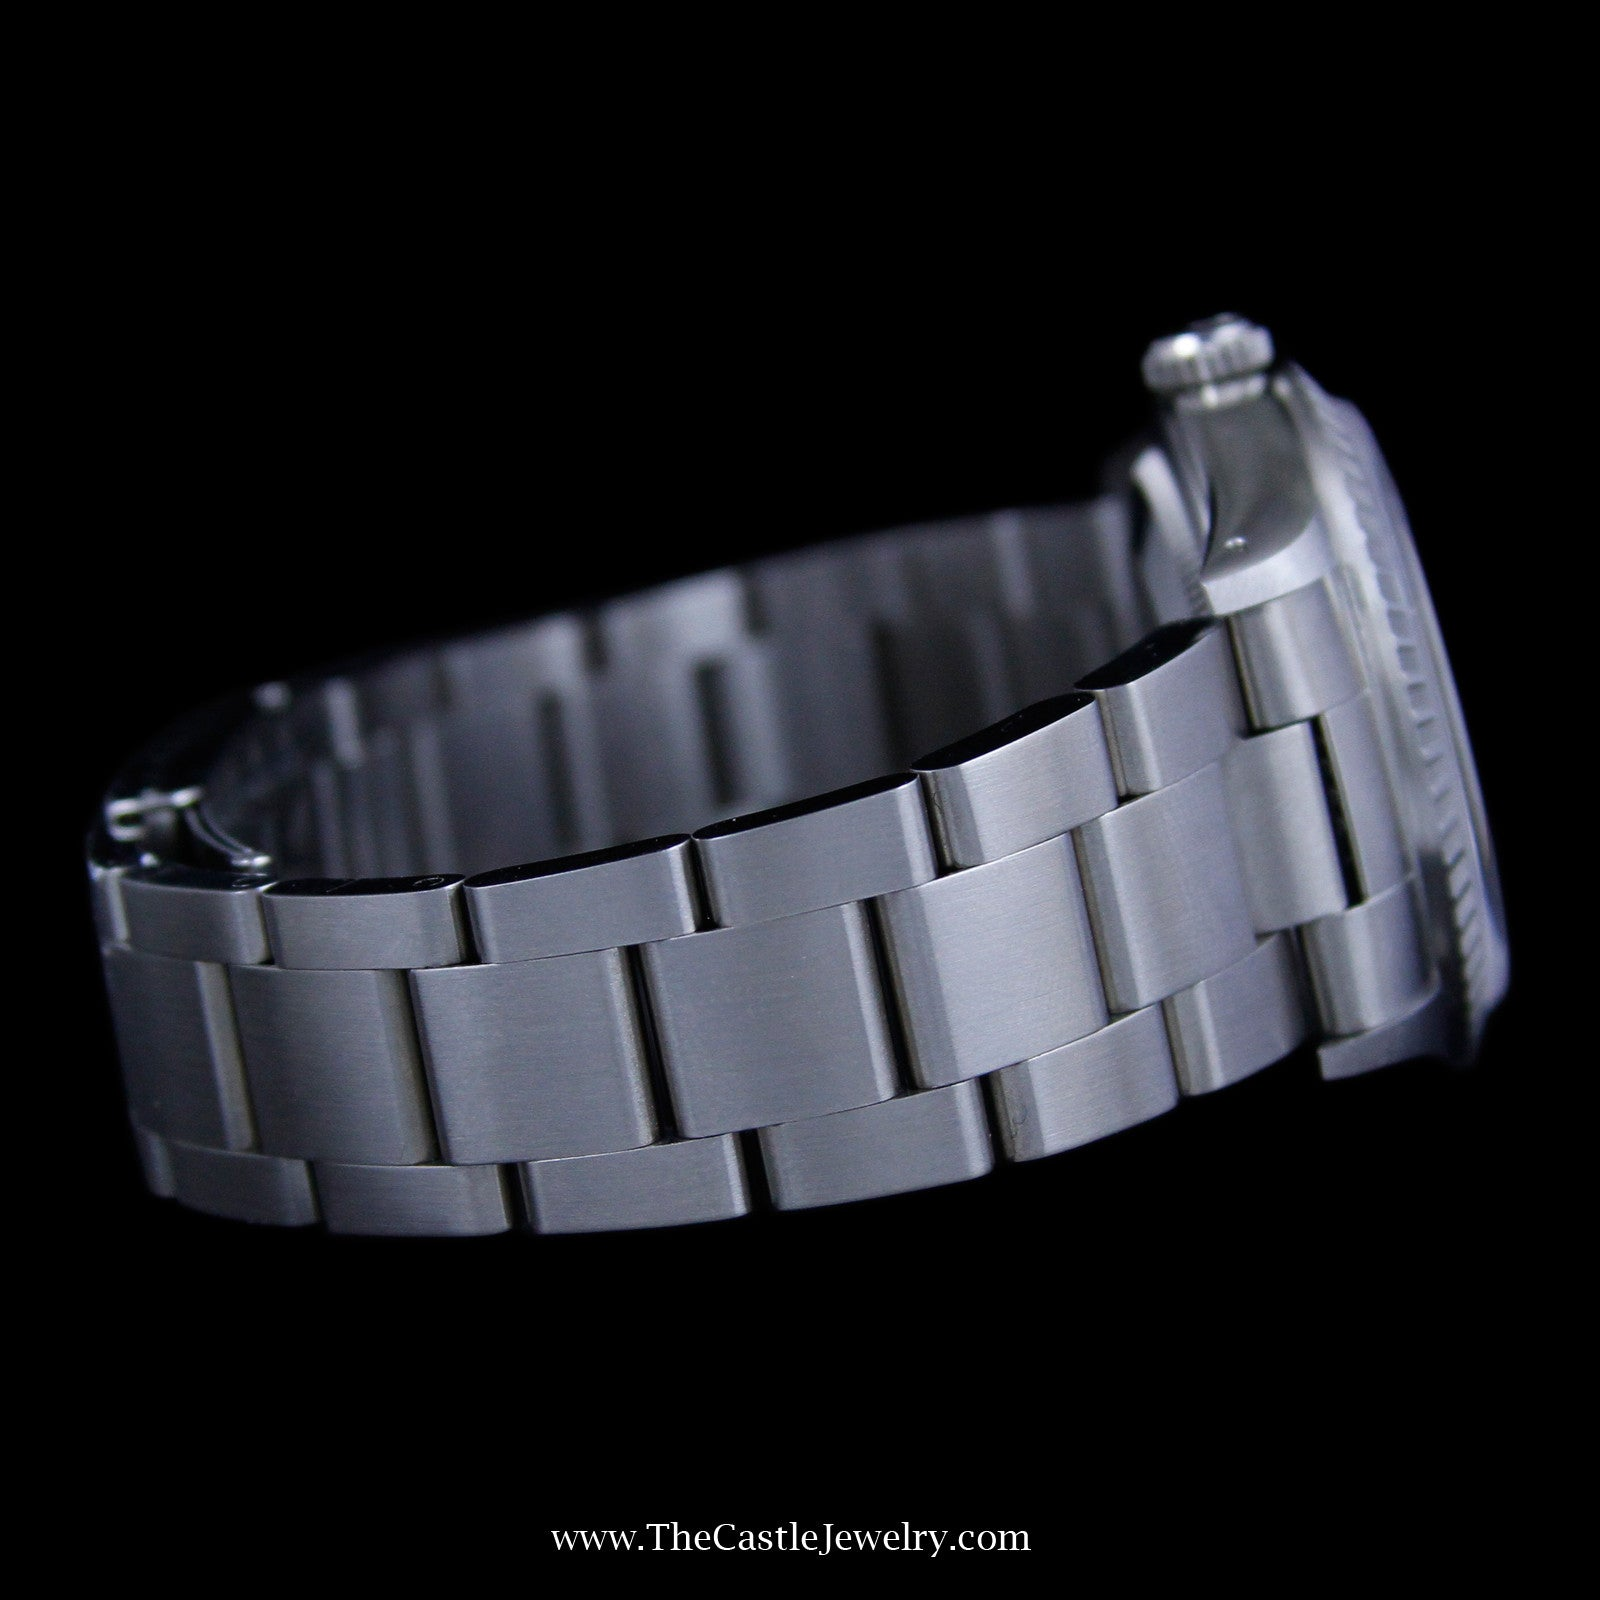 With silver stick dial all stainless oyster bracelet 16220 w warranty